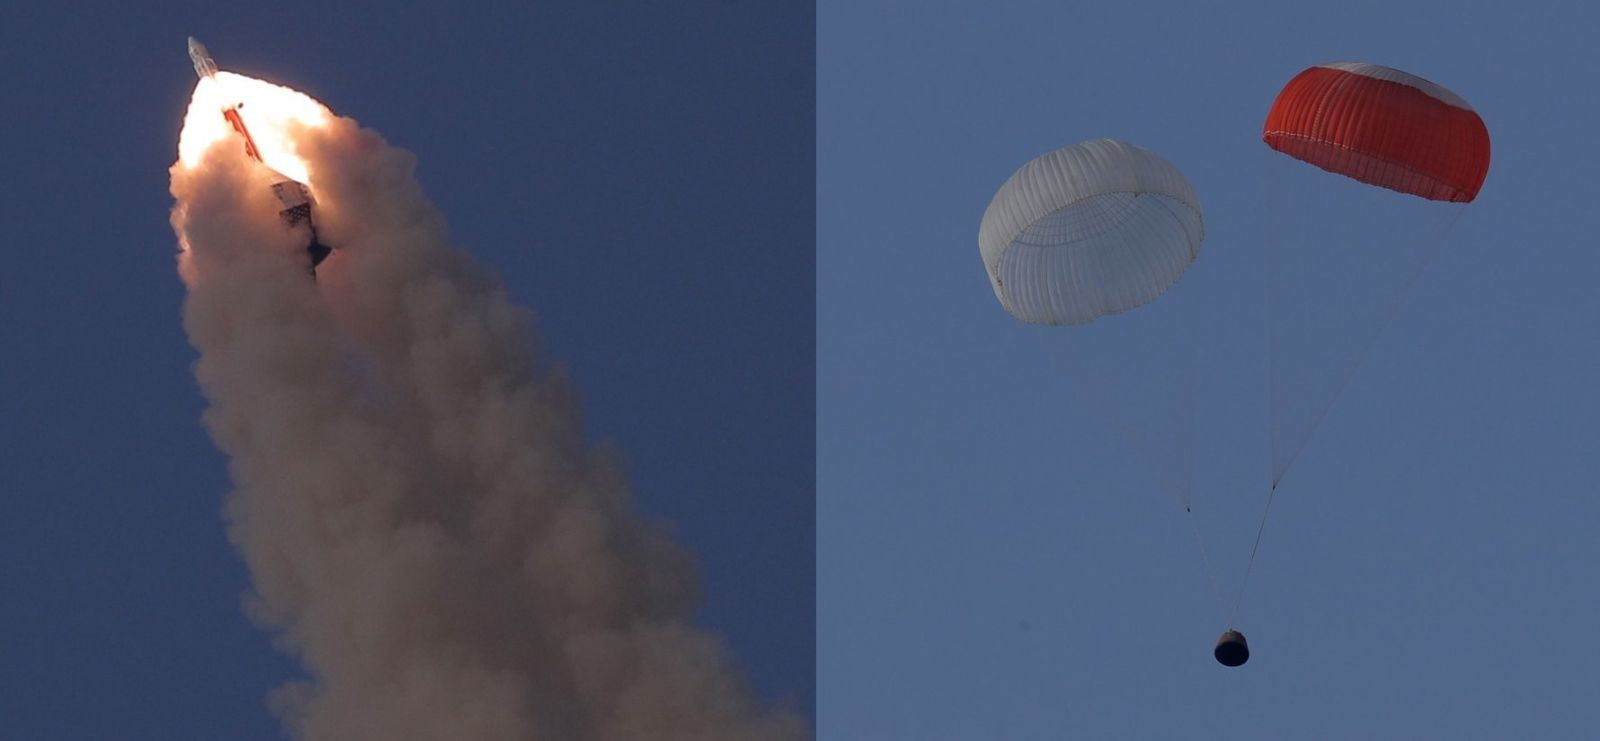 Left: the Crew Escape System and the crew module soar into the sky. Right: the crew module with parachutes deployed descends to the sea.